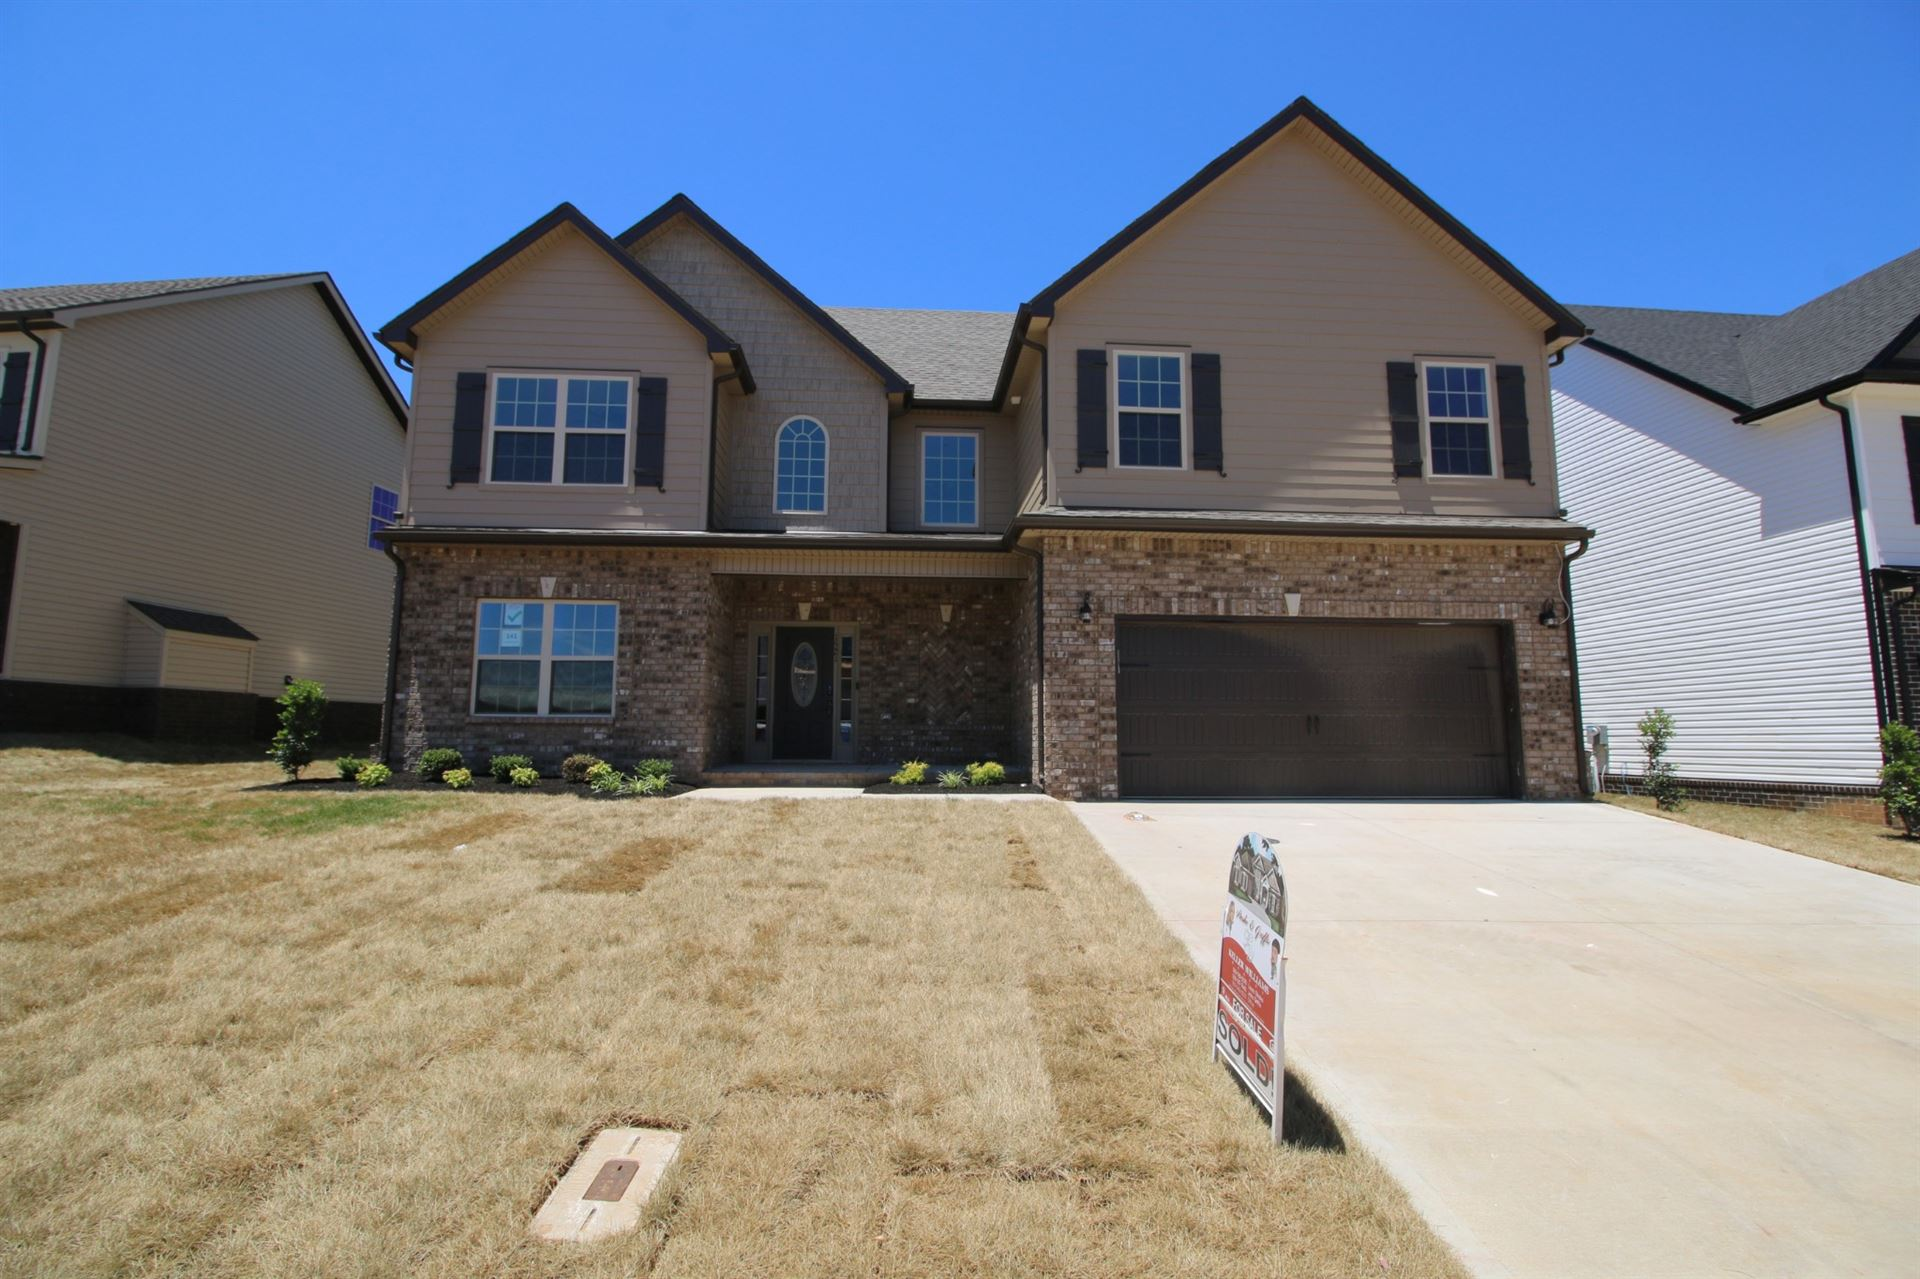 141 Charleston Oaks, Clarksville, TN 37042 - MLS#: 2221741